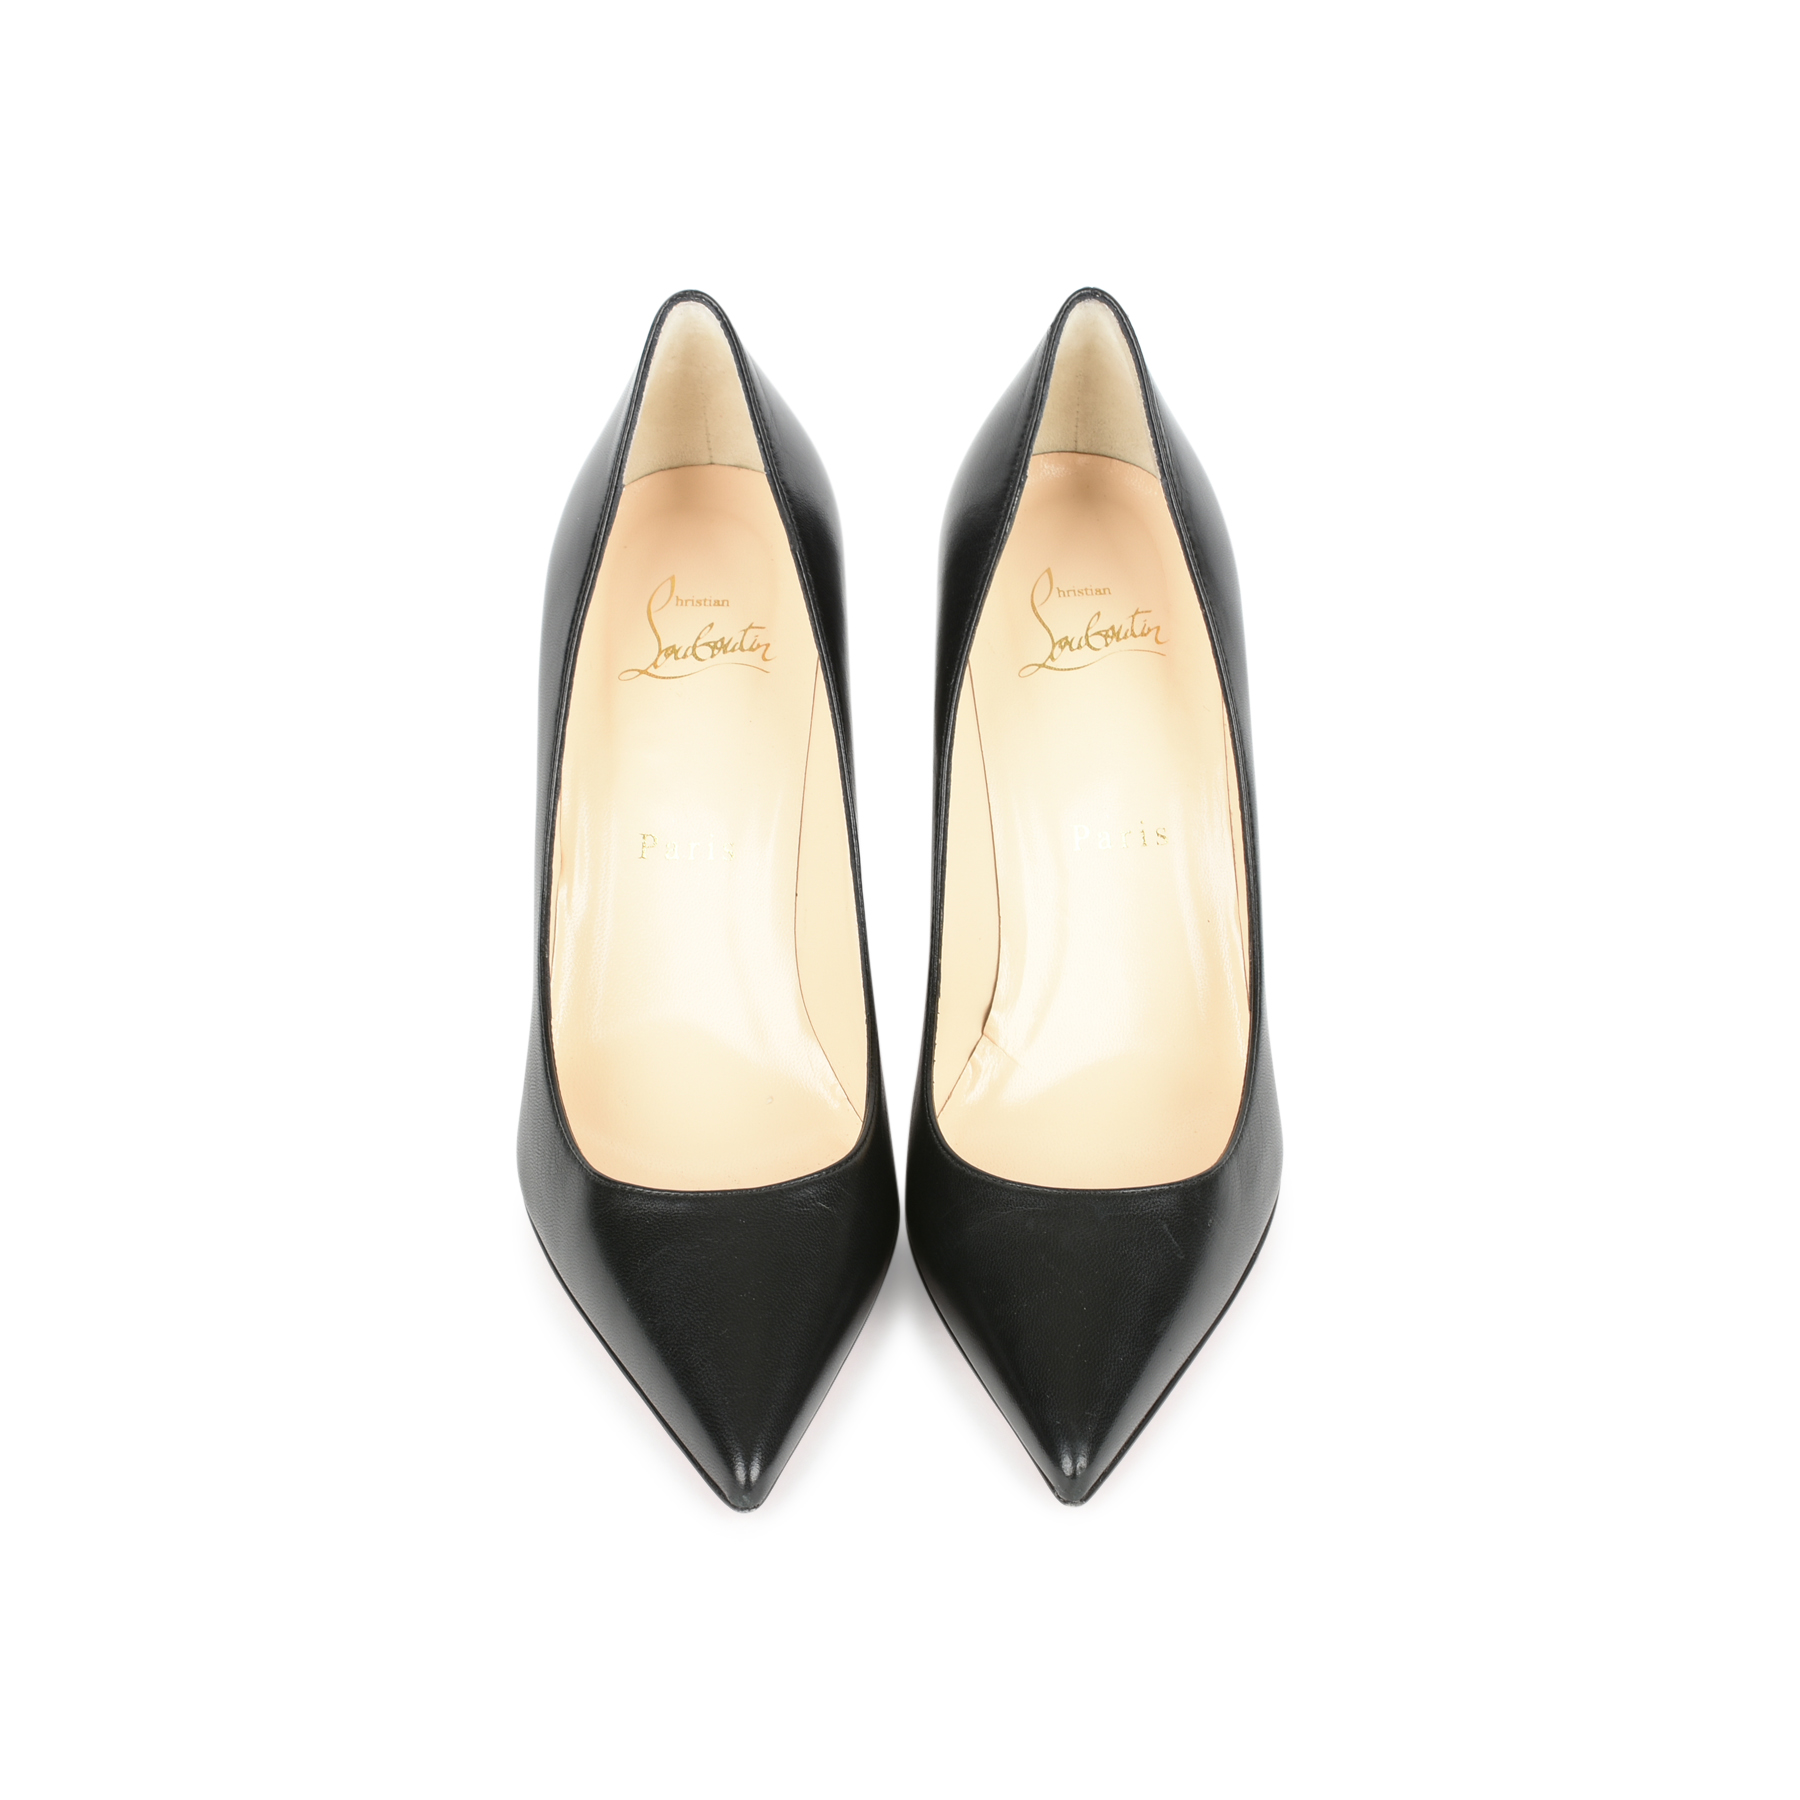 05997f967c37 Authentic Second Hand Christian Louboutin Pigalle 85 Pumps (PSS-054-00172)